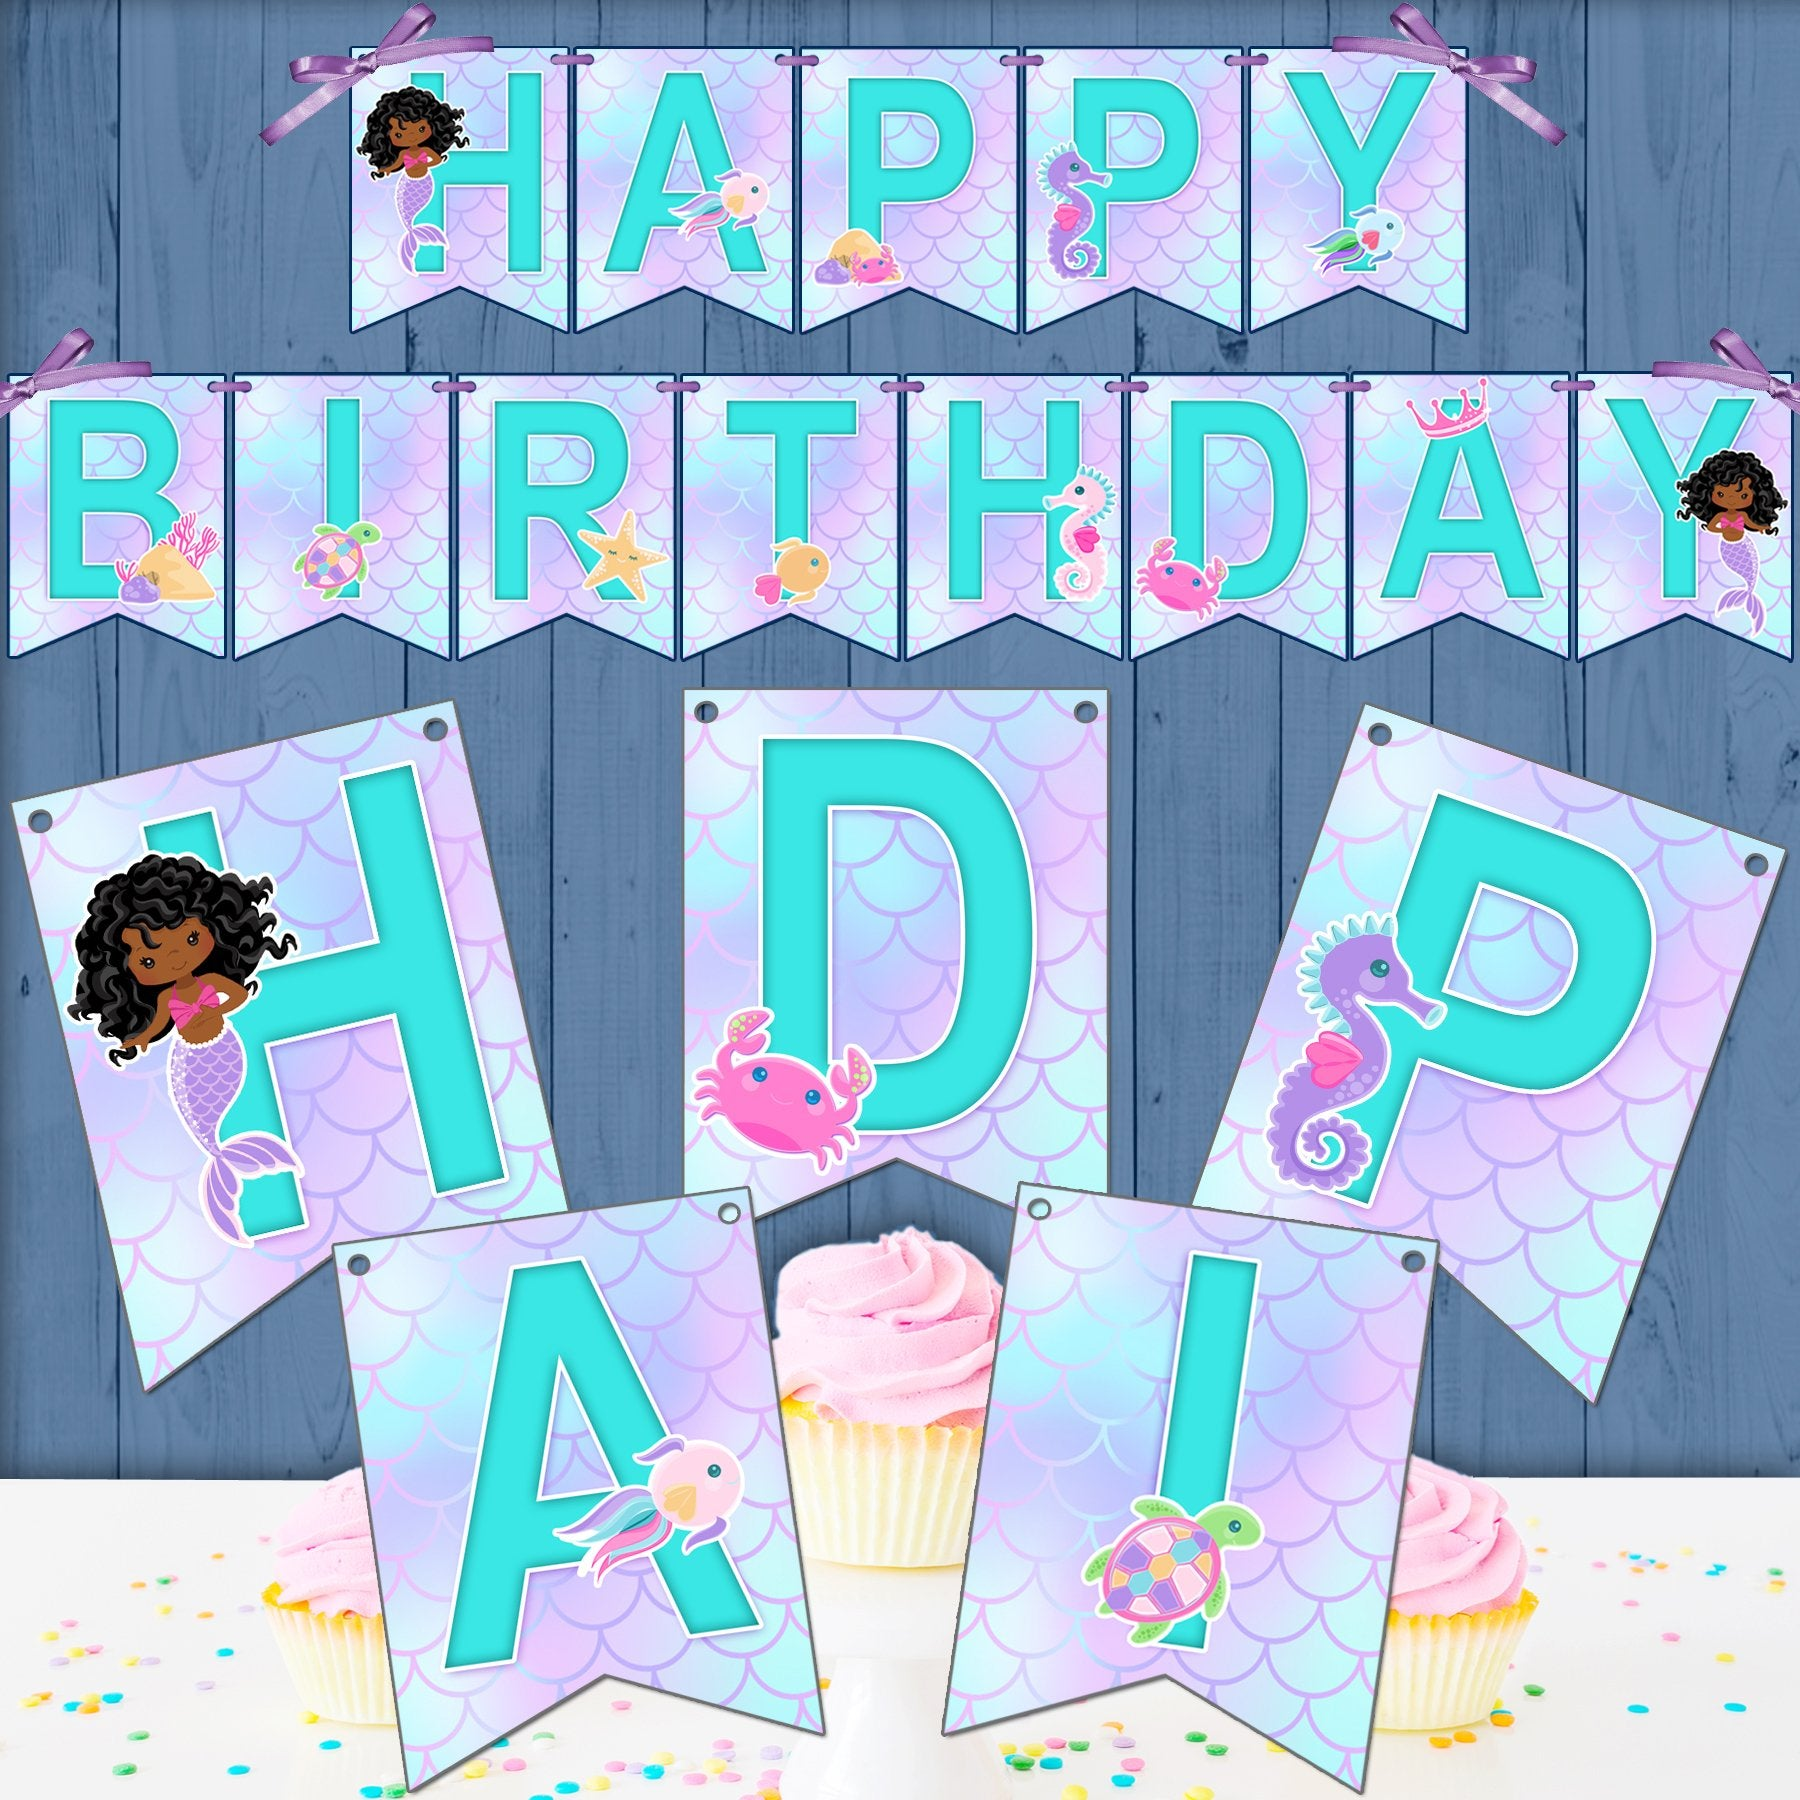 Mermaid Birthday Banner SVG, PNG cutting and print files. Curly afro Rainbow mermaid graphics for Cricut, Silhouette